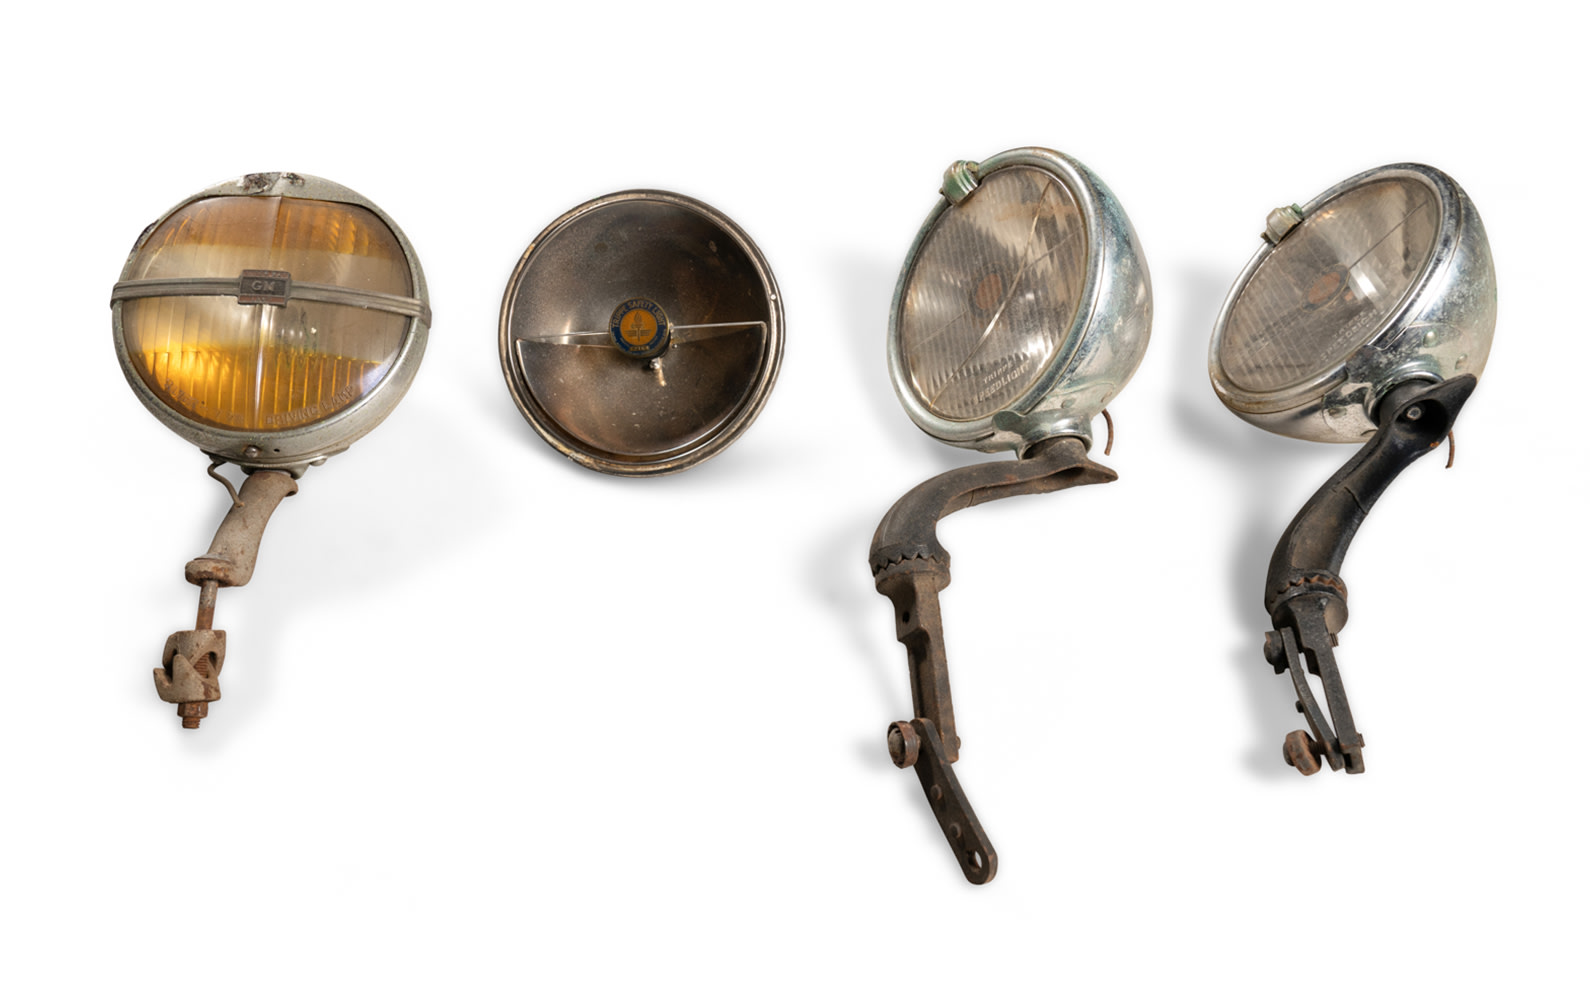 Prod/O21E - Phil Hill C 2021/C0156_Trippe Safety Lights, GM Super Ray Lamp, and Hardware/C0156_Trippe_Safety_Lights_GM_Lamp_Hardware_1_oazgry